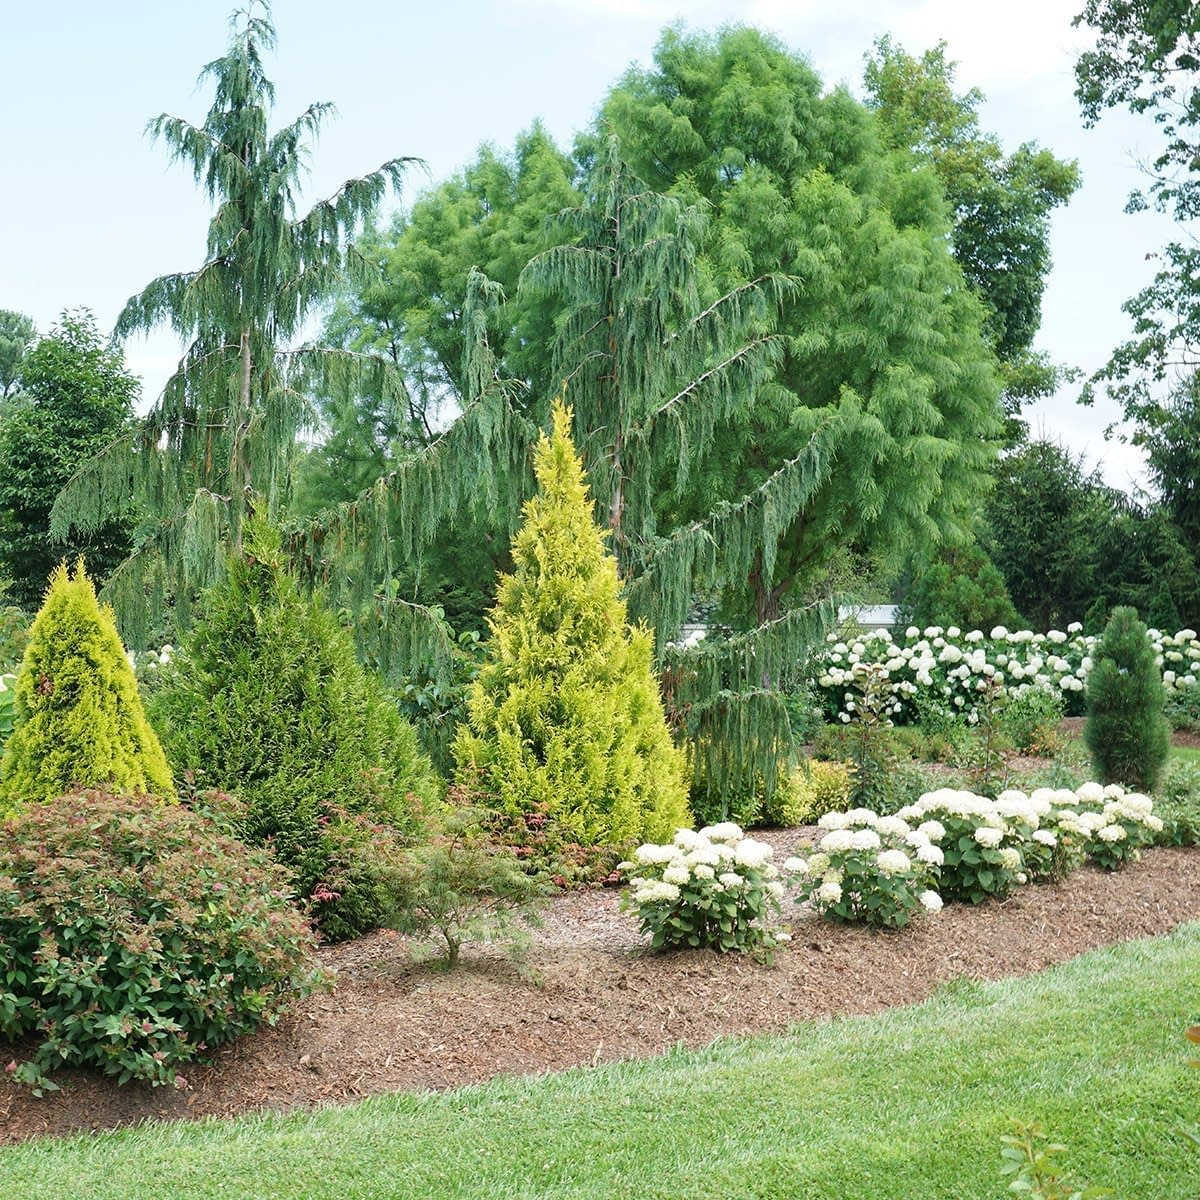 Fluffy arborvitae growing in a bed surrounded by other evergreens trees and shrubs.